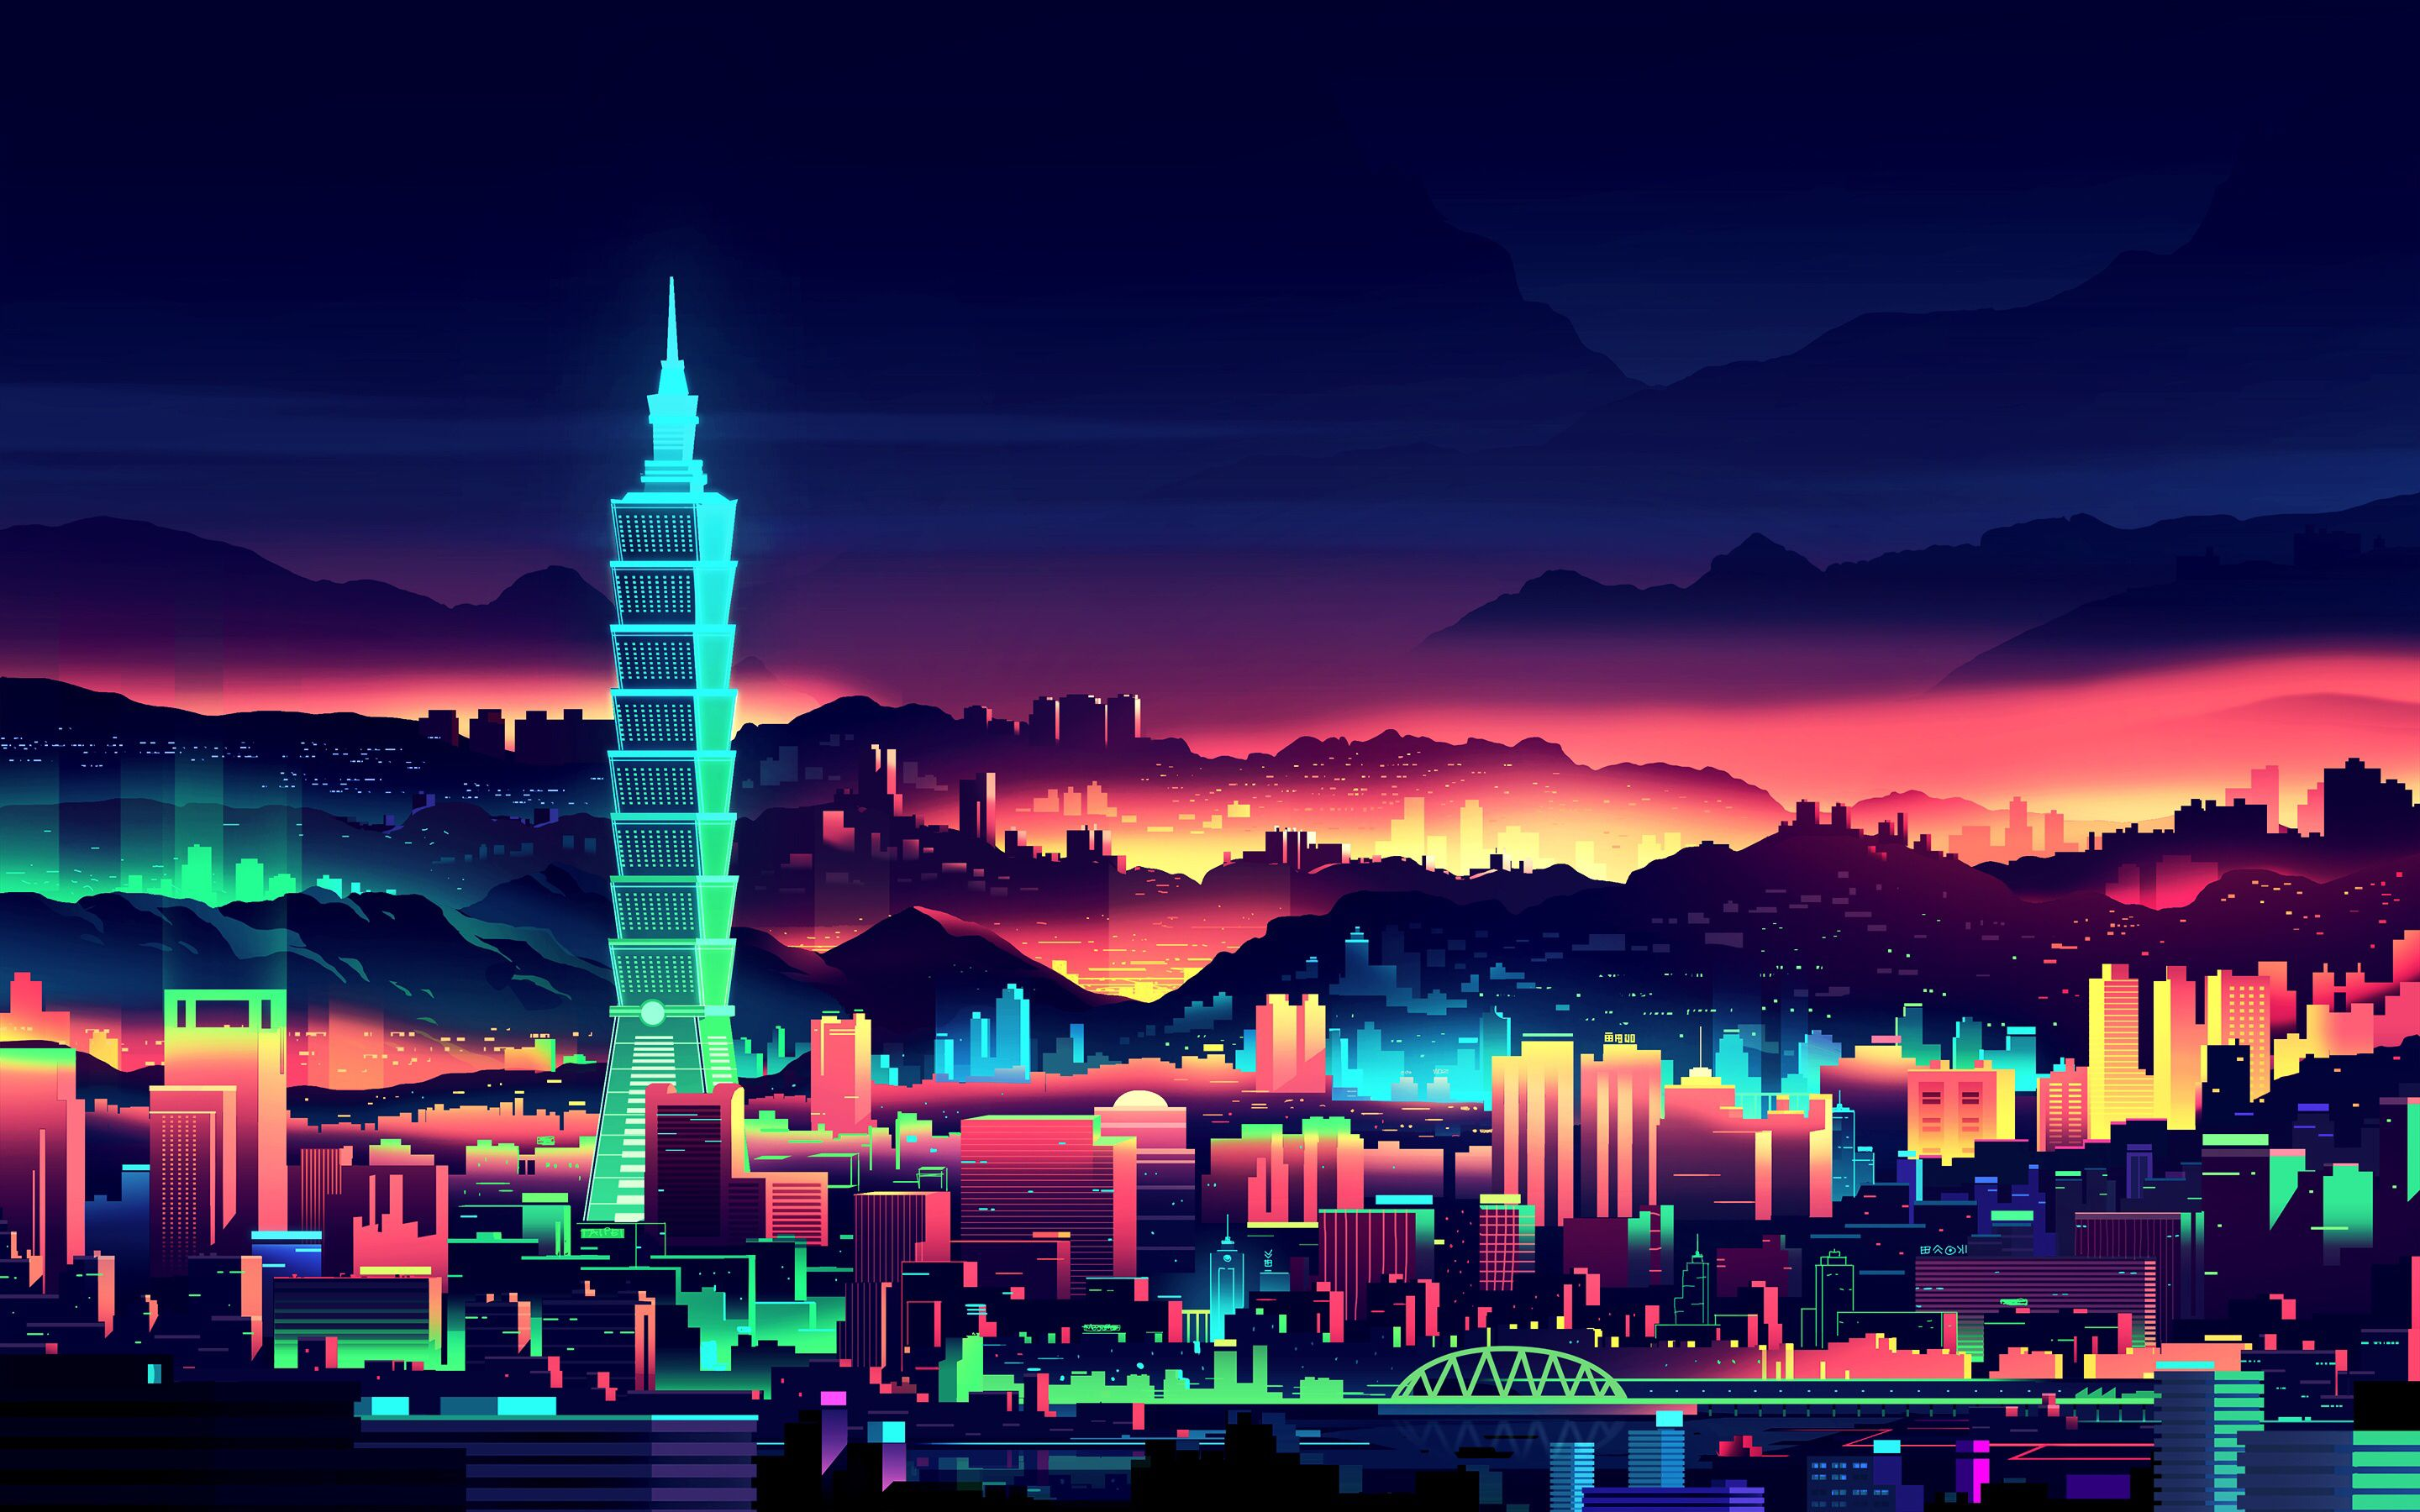 Found a Cool Cyberpunk Wallpaper on /r/wallpapers | Cyberpunk em 2019 | Vaporwave wallpaper ...